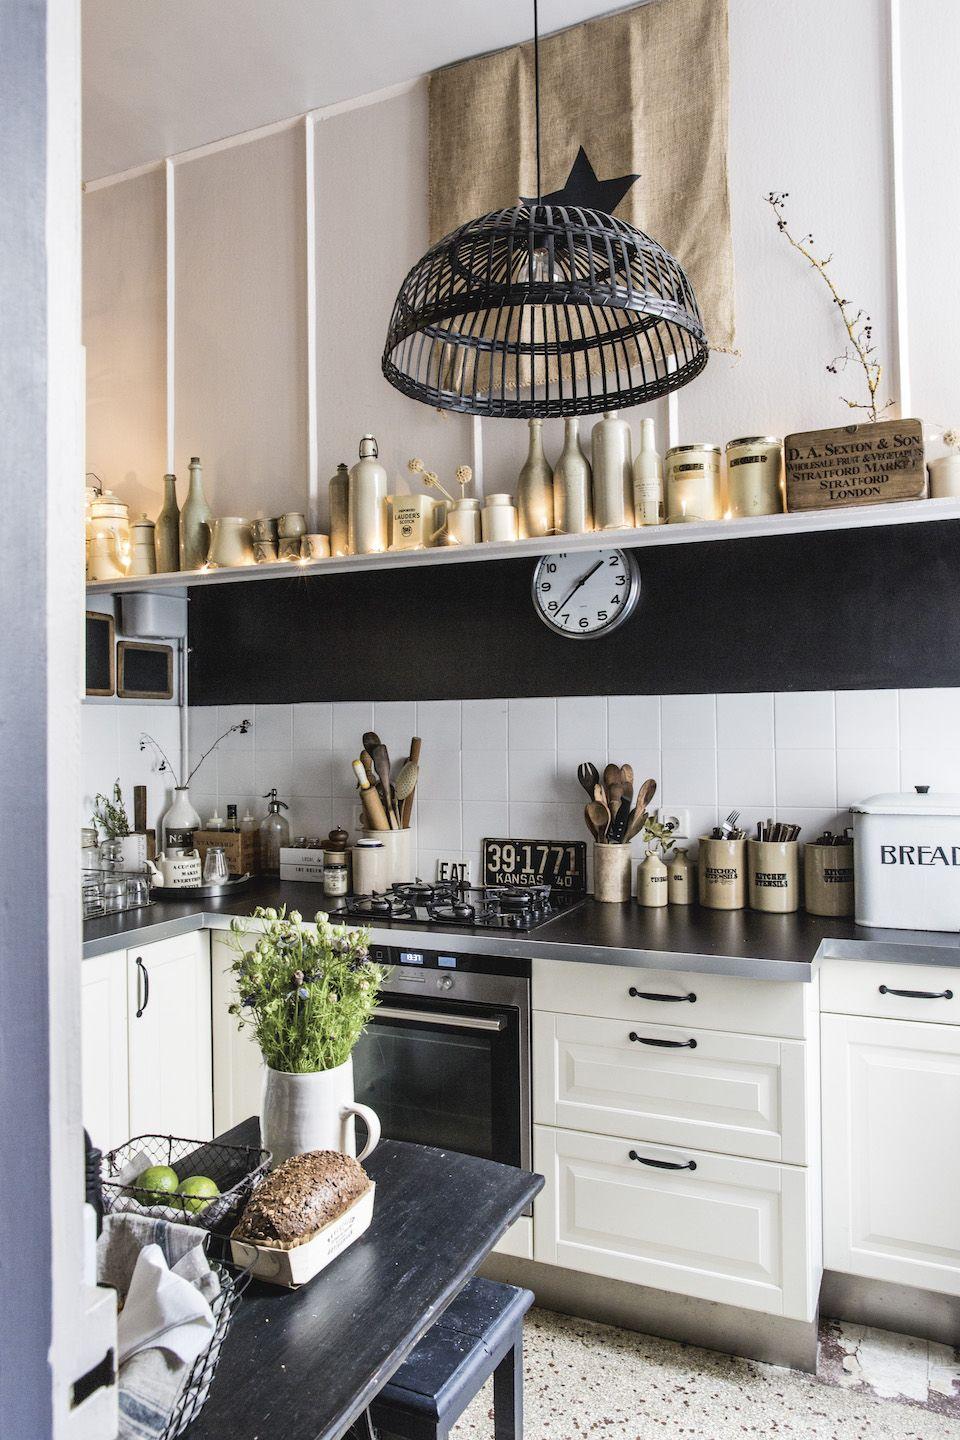 Chez Ariane Dalle Kitchens Manuel canovas and Rustic industrial